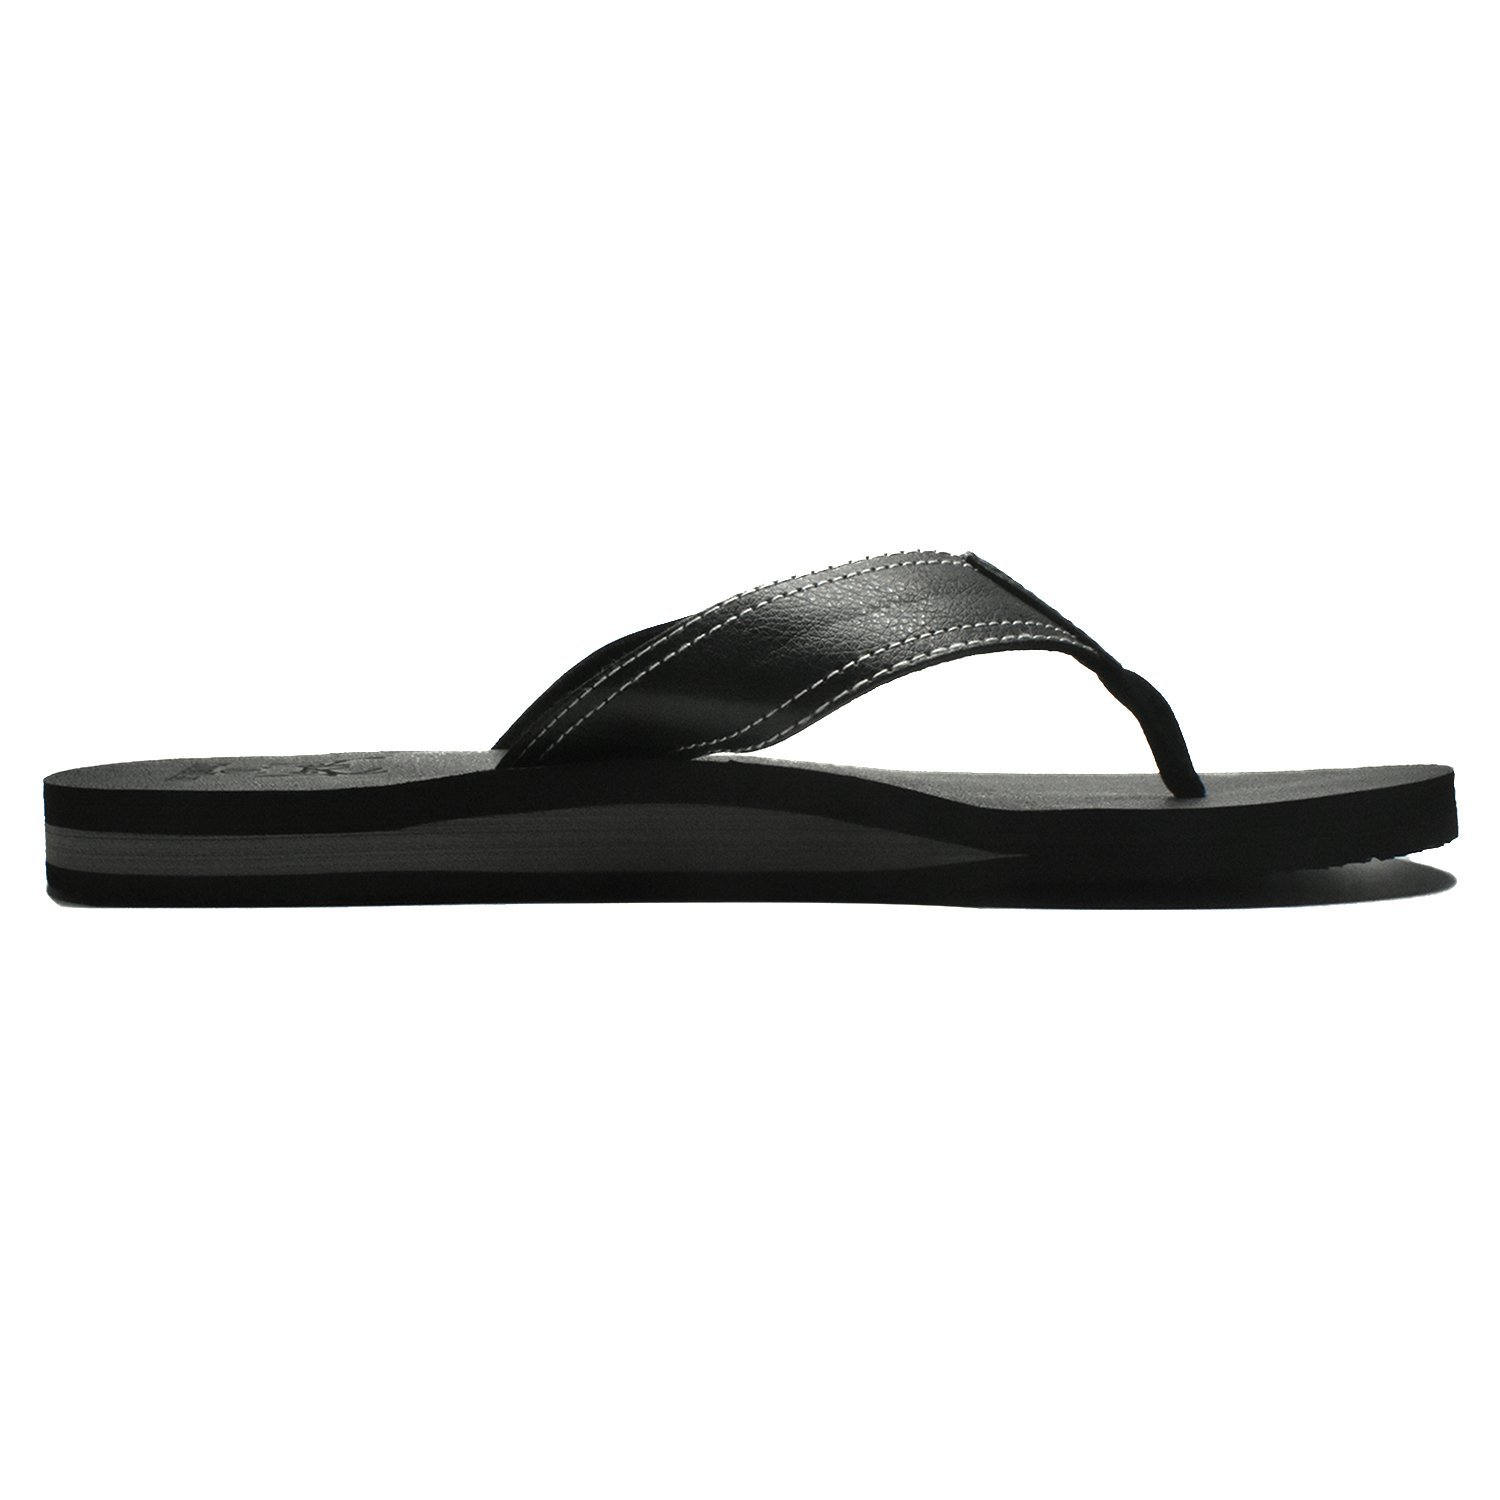 0b535922b COFACE Men s Yoga Mat Flip Flops Leather Thong Sandals with Arch Support   Amazon.co.uk  Shoes   Bags